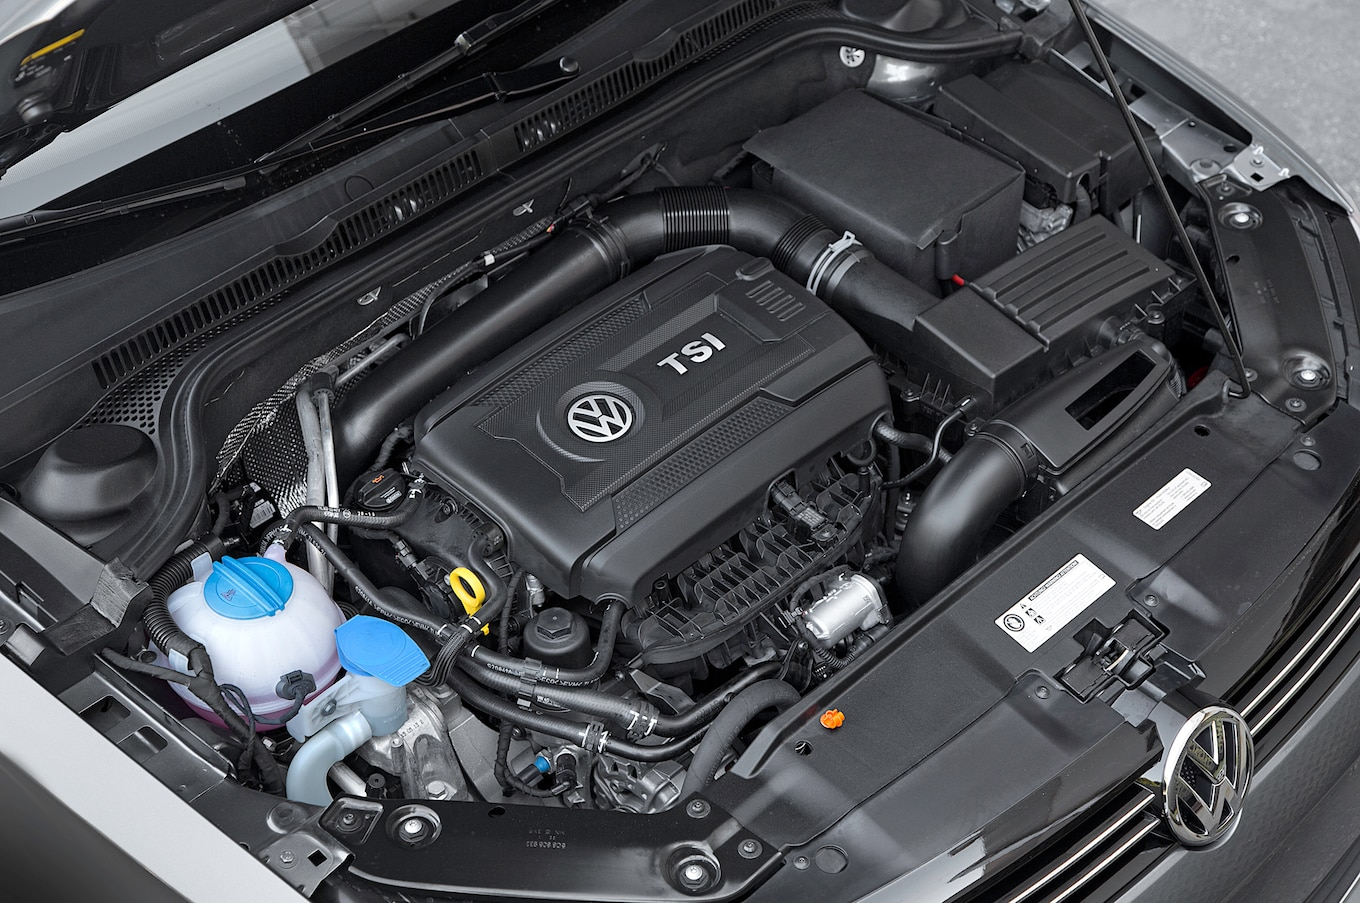 medium resolution of 2014 volkswagen jetta 1 8t se first test motortrend 2014 vw jetta engine diagram